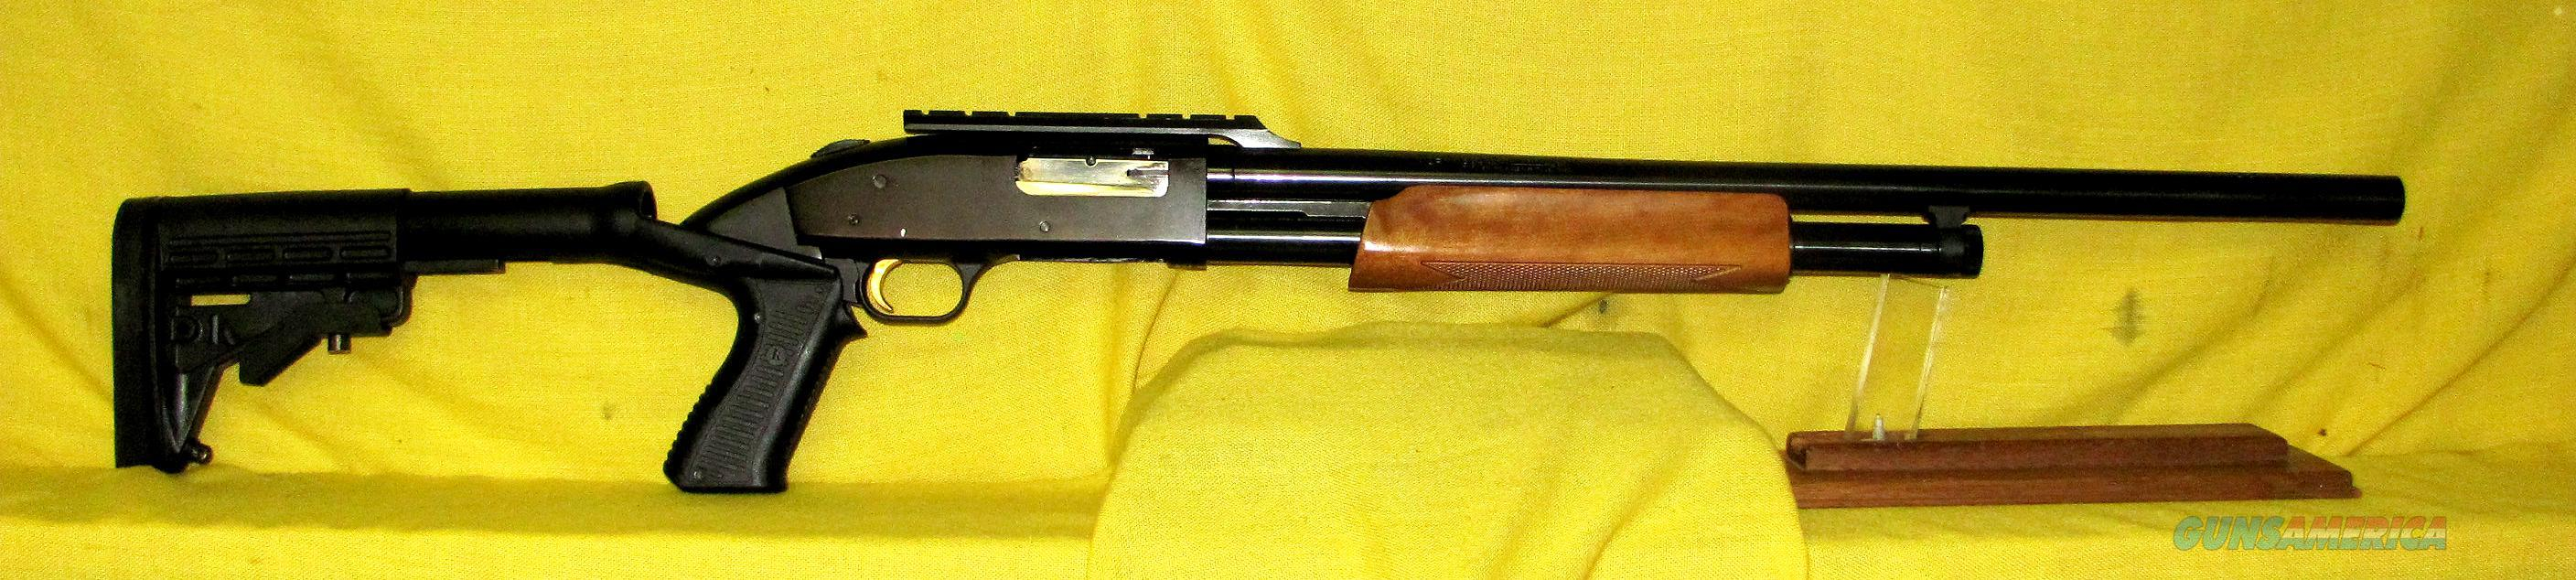 MOSSBERG 500A  Guns > Shotguns > Mossberg Shotguns > Pump > Sporting